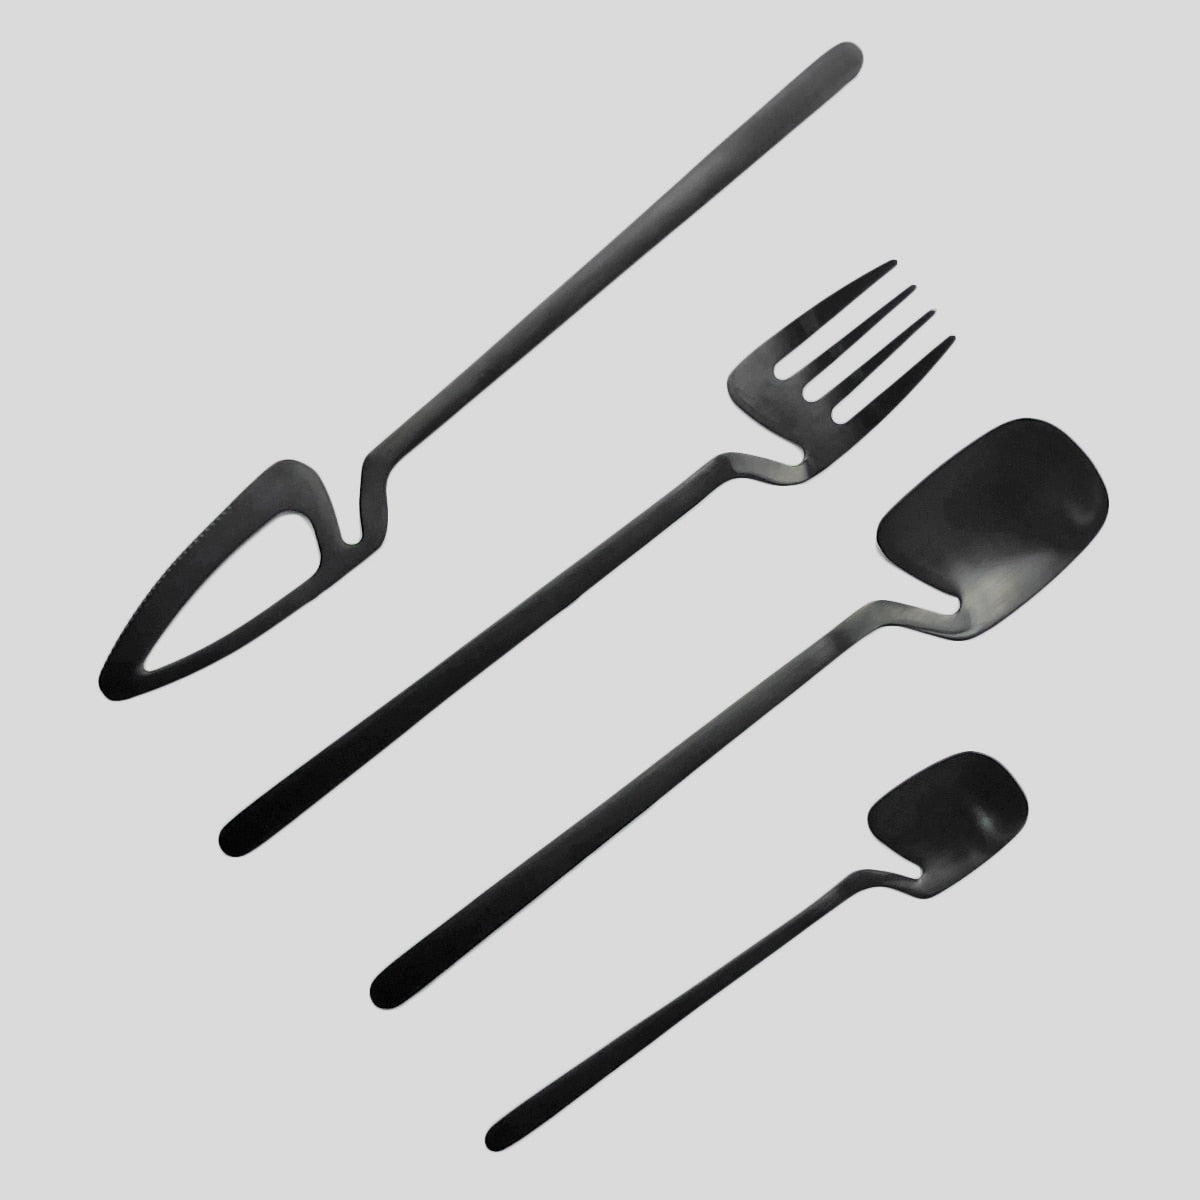 24Pcs Black Cutlery Set Knife Fork Coffee Tea Spoon Dinnerware Set Matte 18/10 Stainless Steel Tableware Western Flatware Set